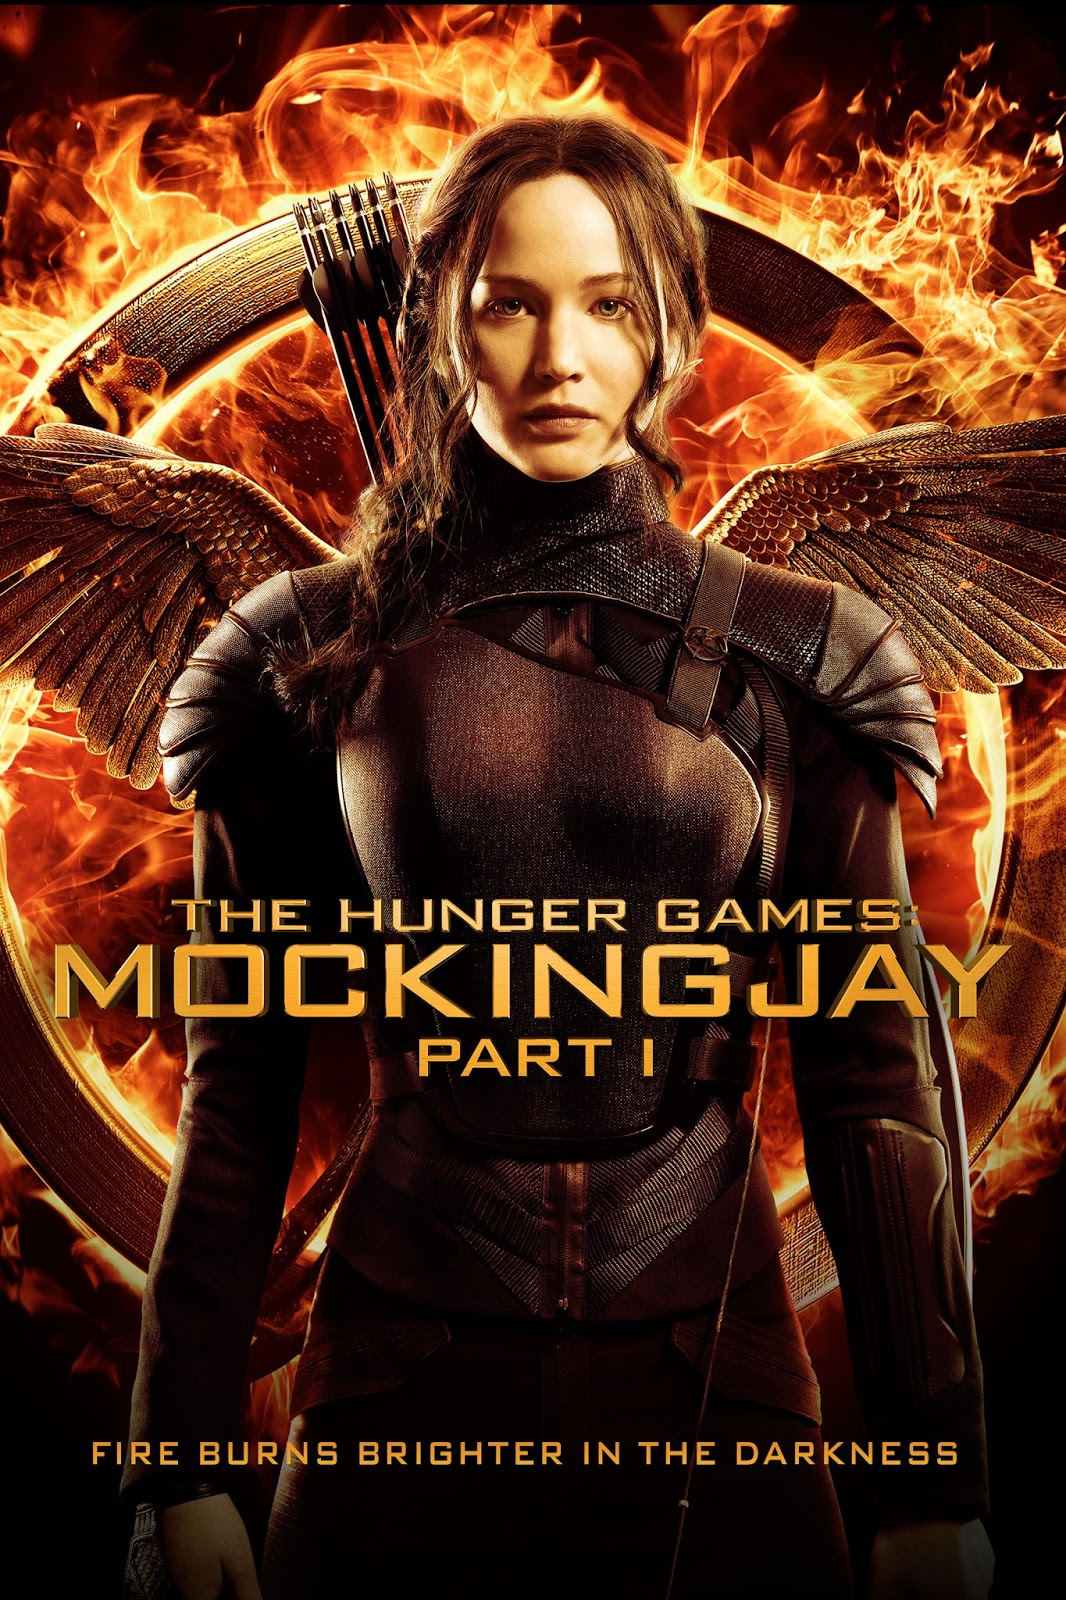 the hunger games mockingjay part 2 full movie download 720p